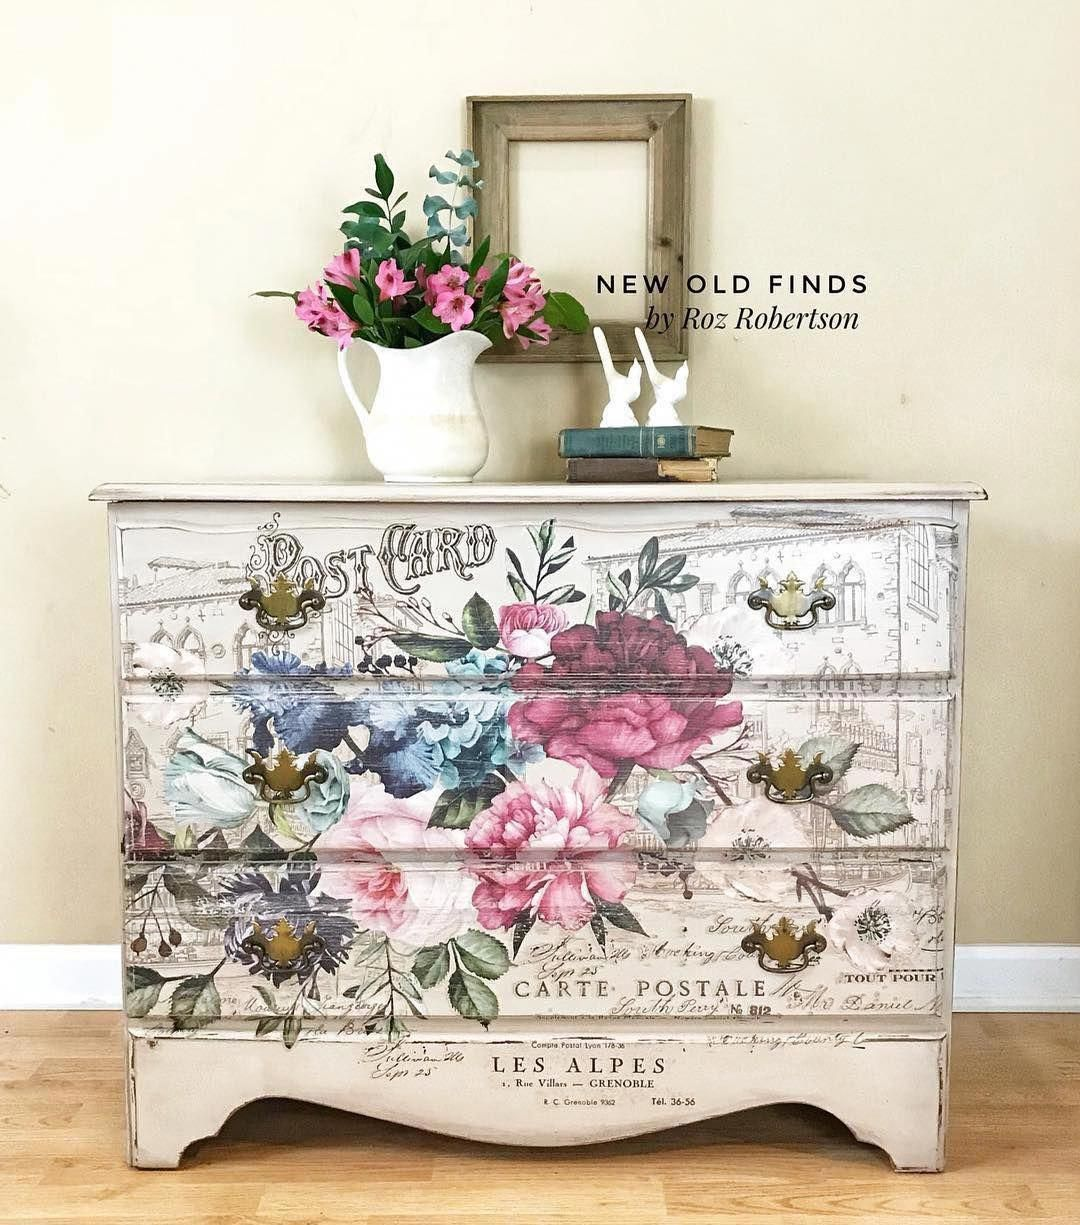 Roz Robertson of @newoldfinds used our new [re]design transfer Imperial Garden on this beautiful dresser. She shows it off perfectly. New transfers are shipping to retailers first week in September. See Roz's page for more gorgeous creations using the new transfers and more! ������#redesigntransfers #homedecor #diy #diyhomedecor #furniture #furnitureartist #upclcyed #diyfurniture